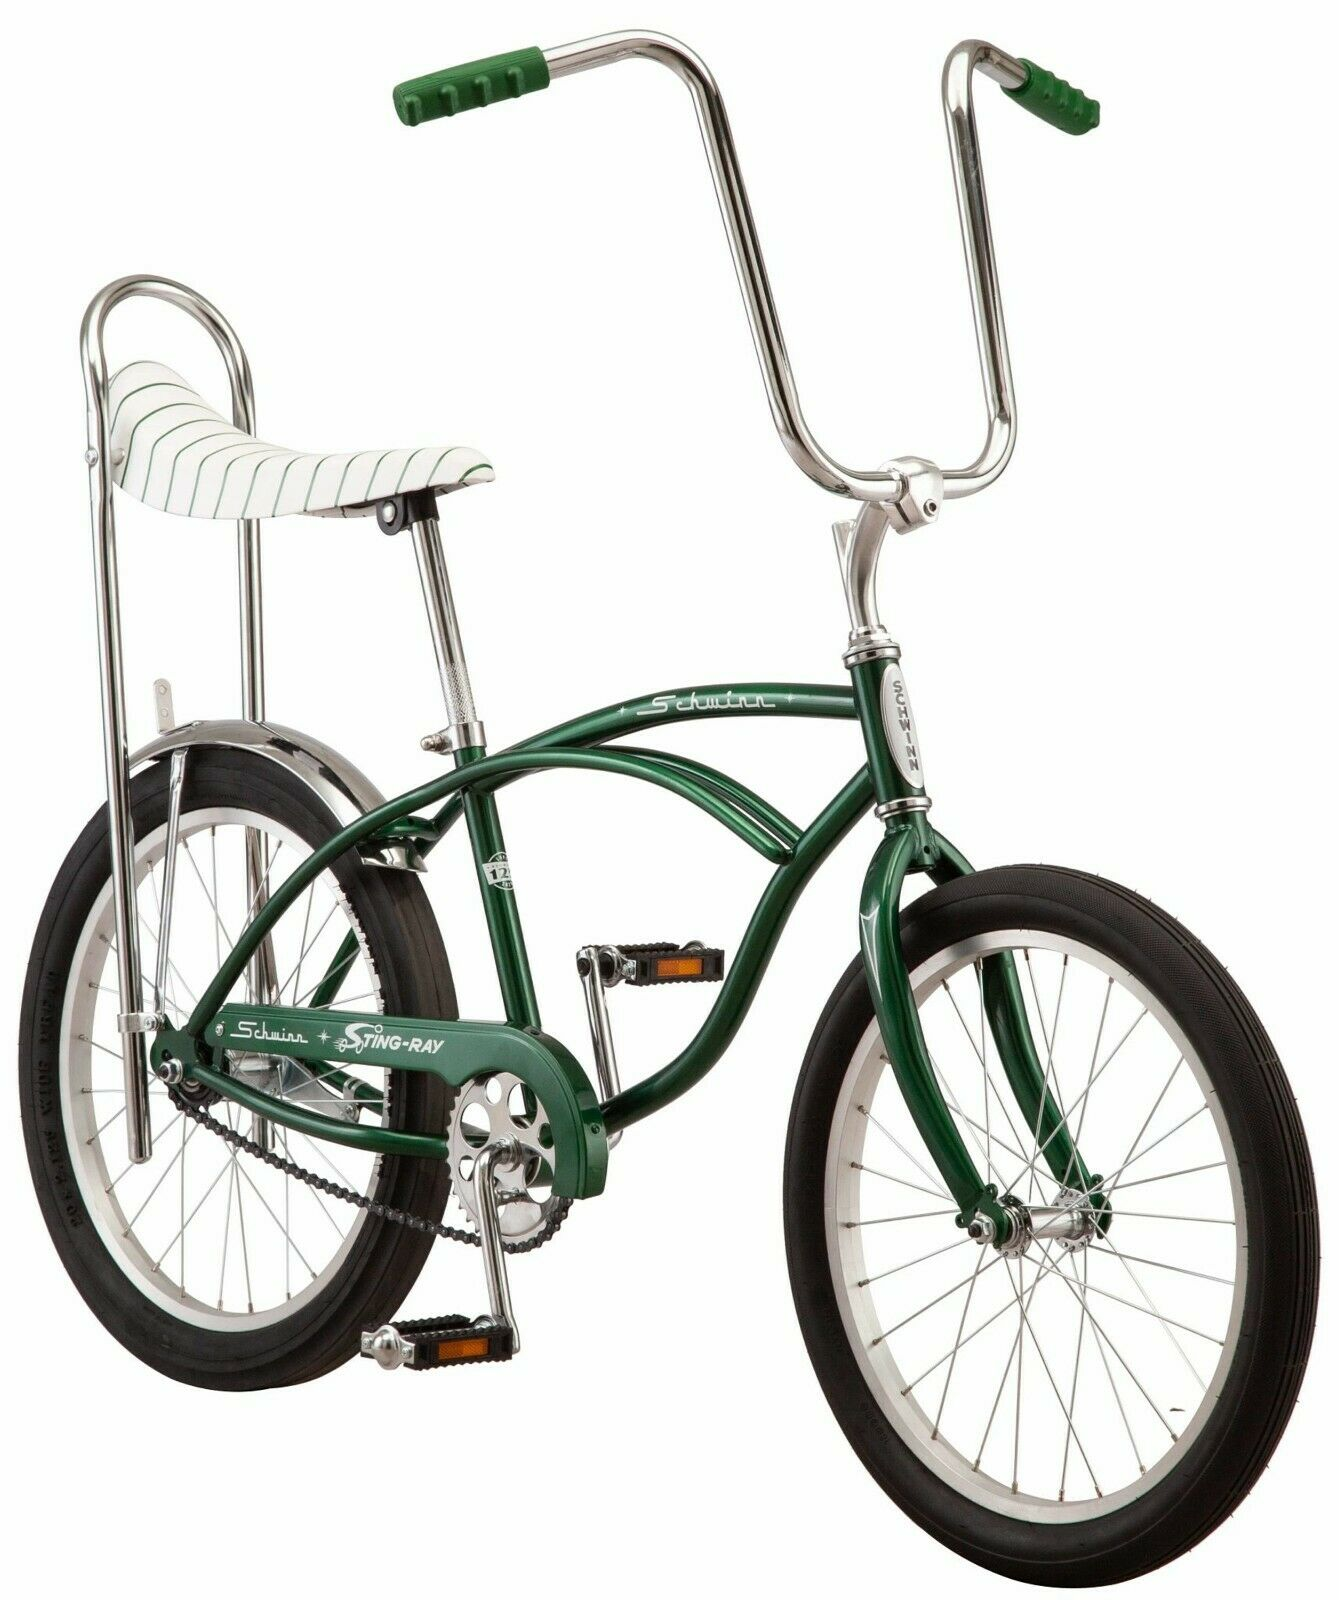 CLASSIC Schwinn Green StingRay Vintage Retro  BIKE Banana Se